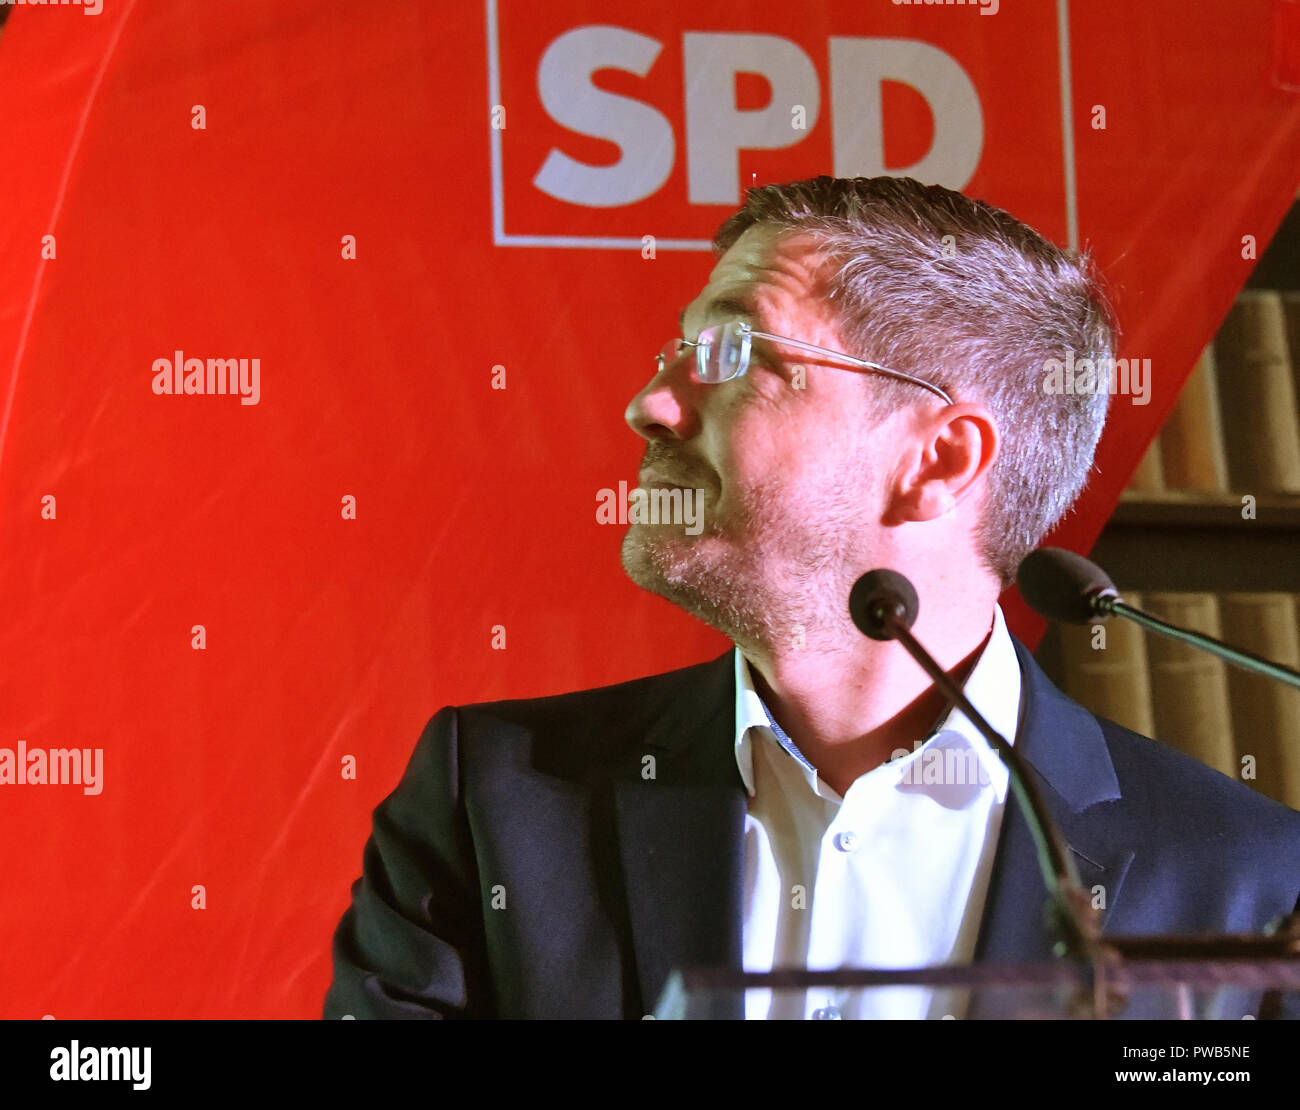 Potsdam, Brandenburg. 14th Oct, 2018. 14 October 2018, Germany, Potsdam: Mayor candidate Mike Schubert (SPD) is waiting for the first results of the count. Credit: Bernd Settnik/dpa-Zen tralbild/dpa/Alamy Live News - Stock Image